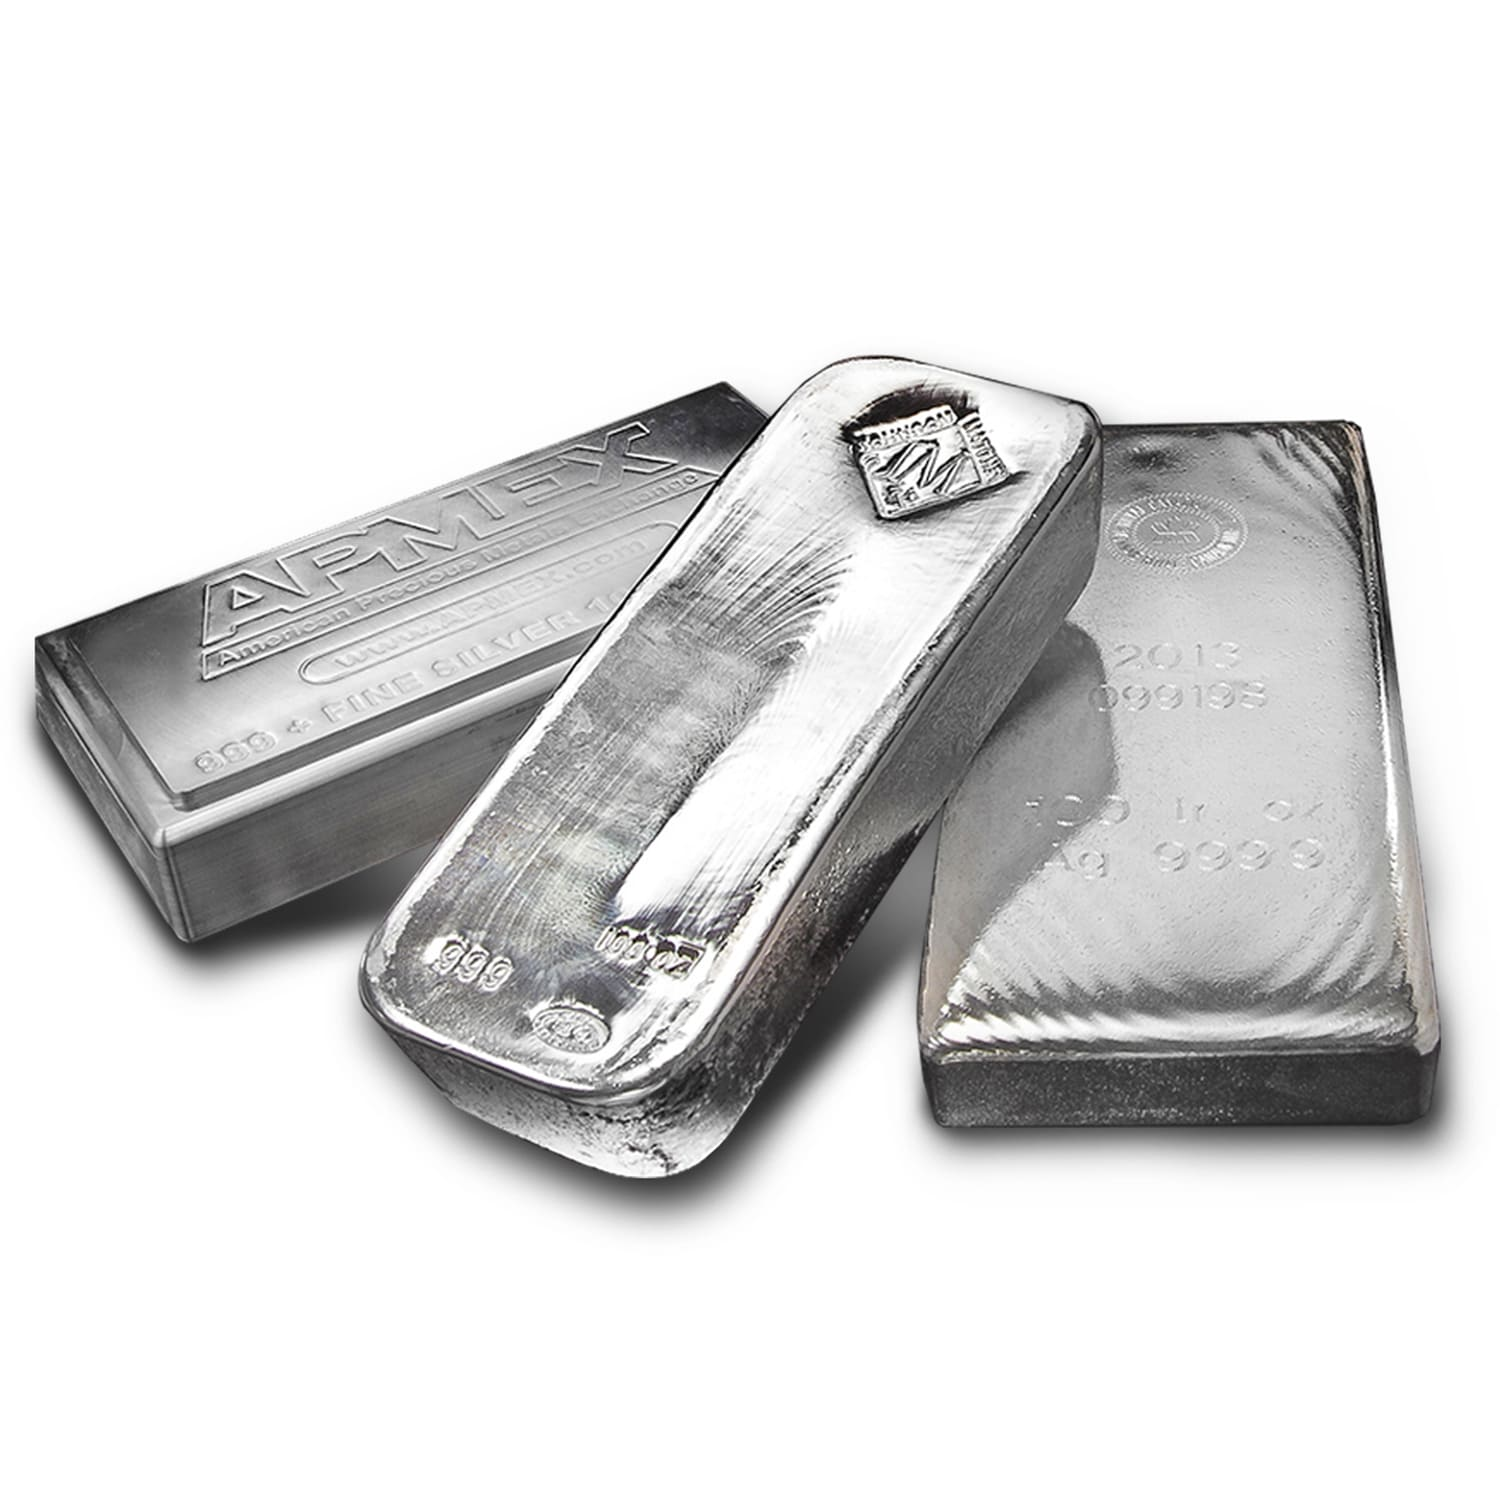 104.65 oz Silver Bars - Secondary Market